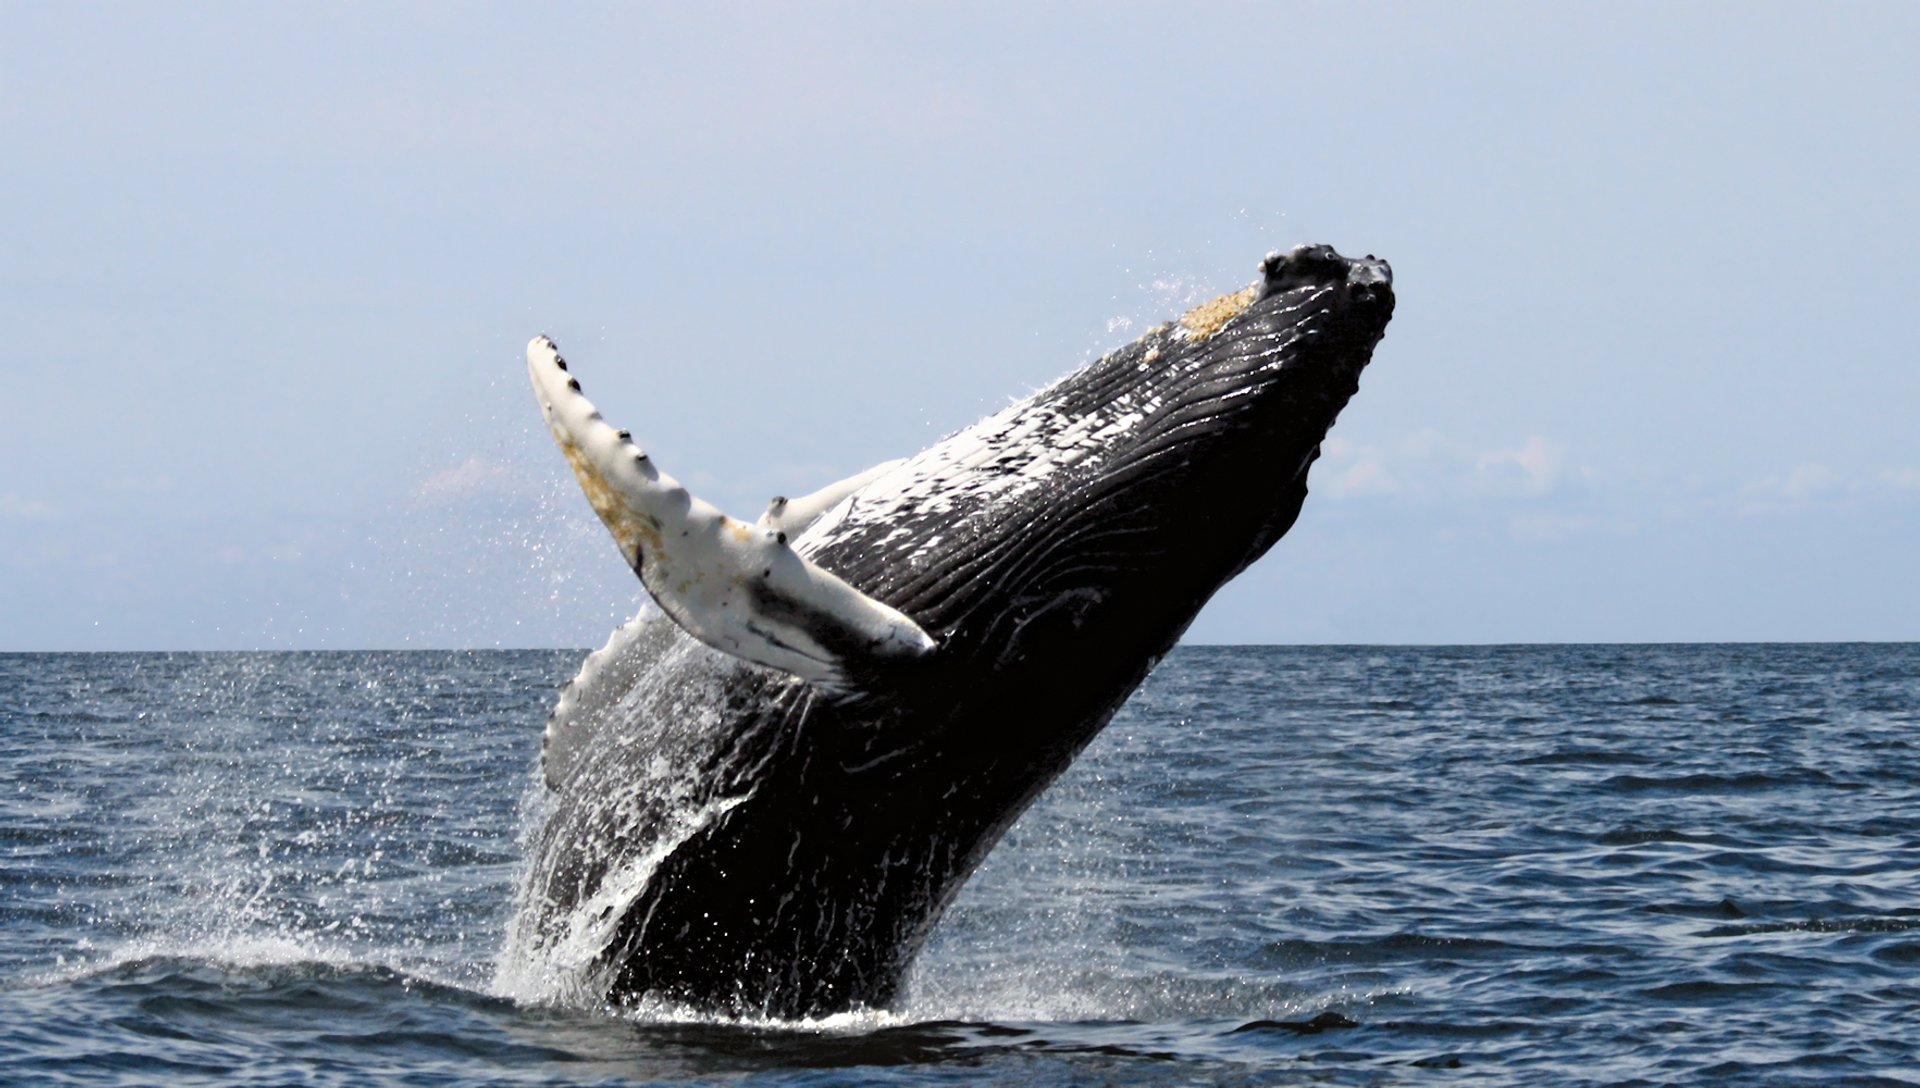 Whale Watching in Madagascar 2020 - Best Time